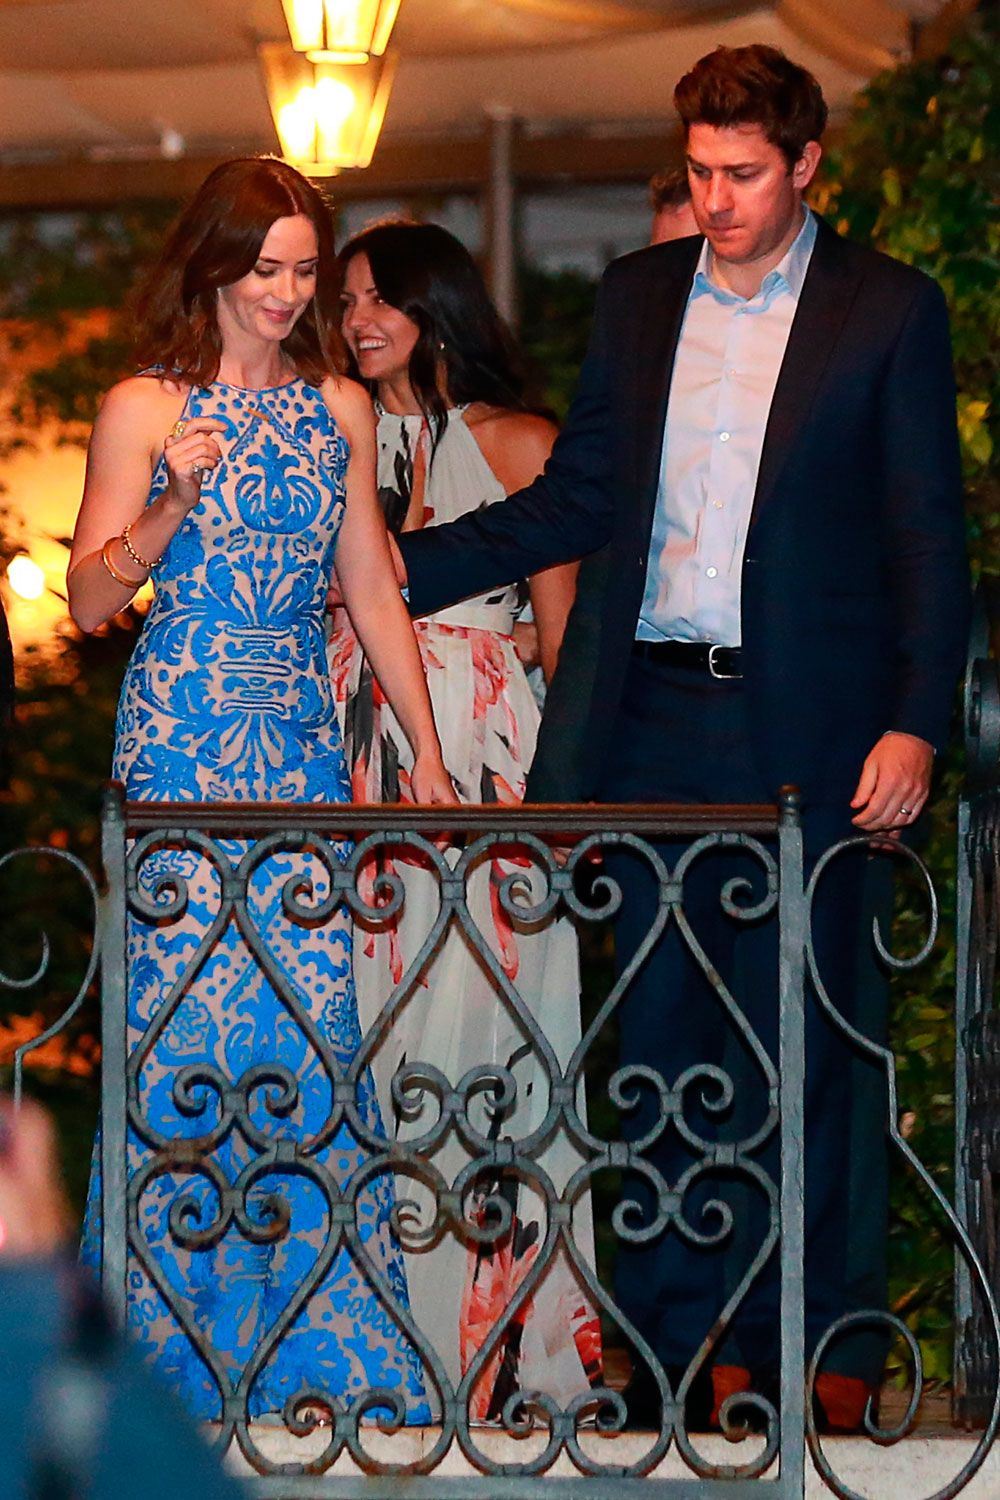 John Krasinski Emily Blunt Wedding.George And Amal Clooney Celebrate Their Second Wedding